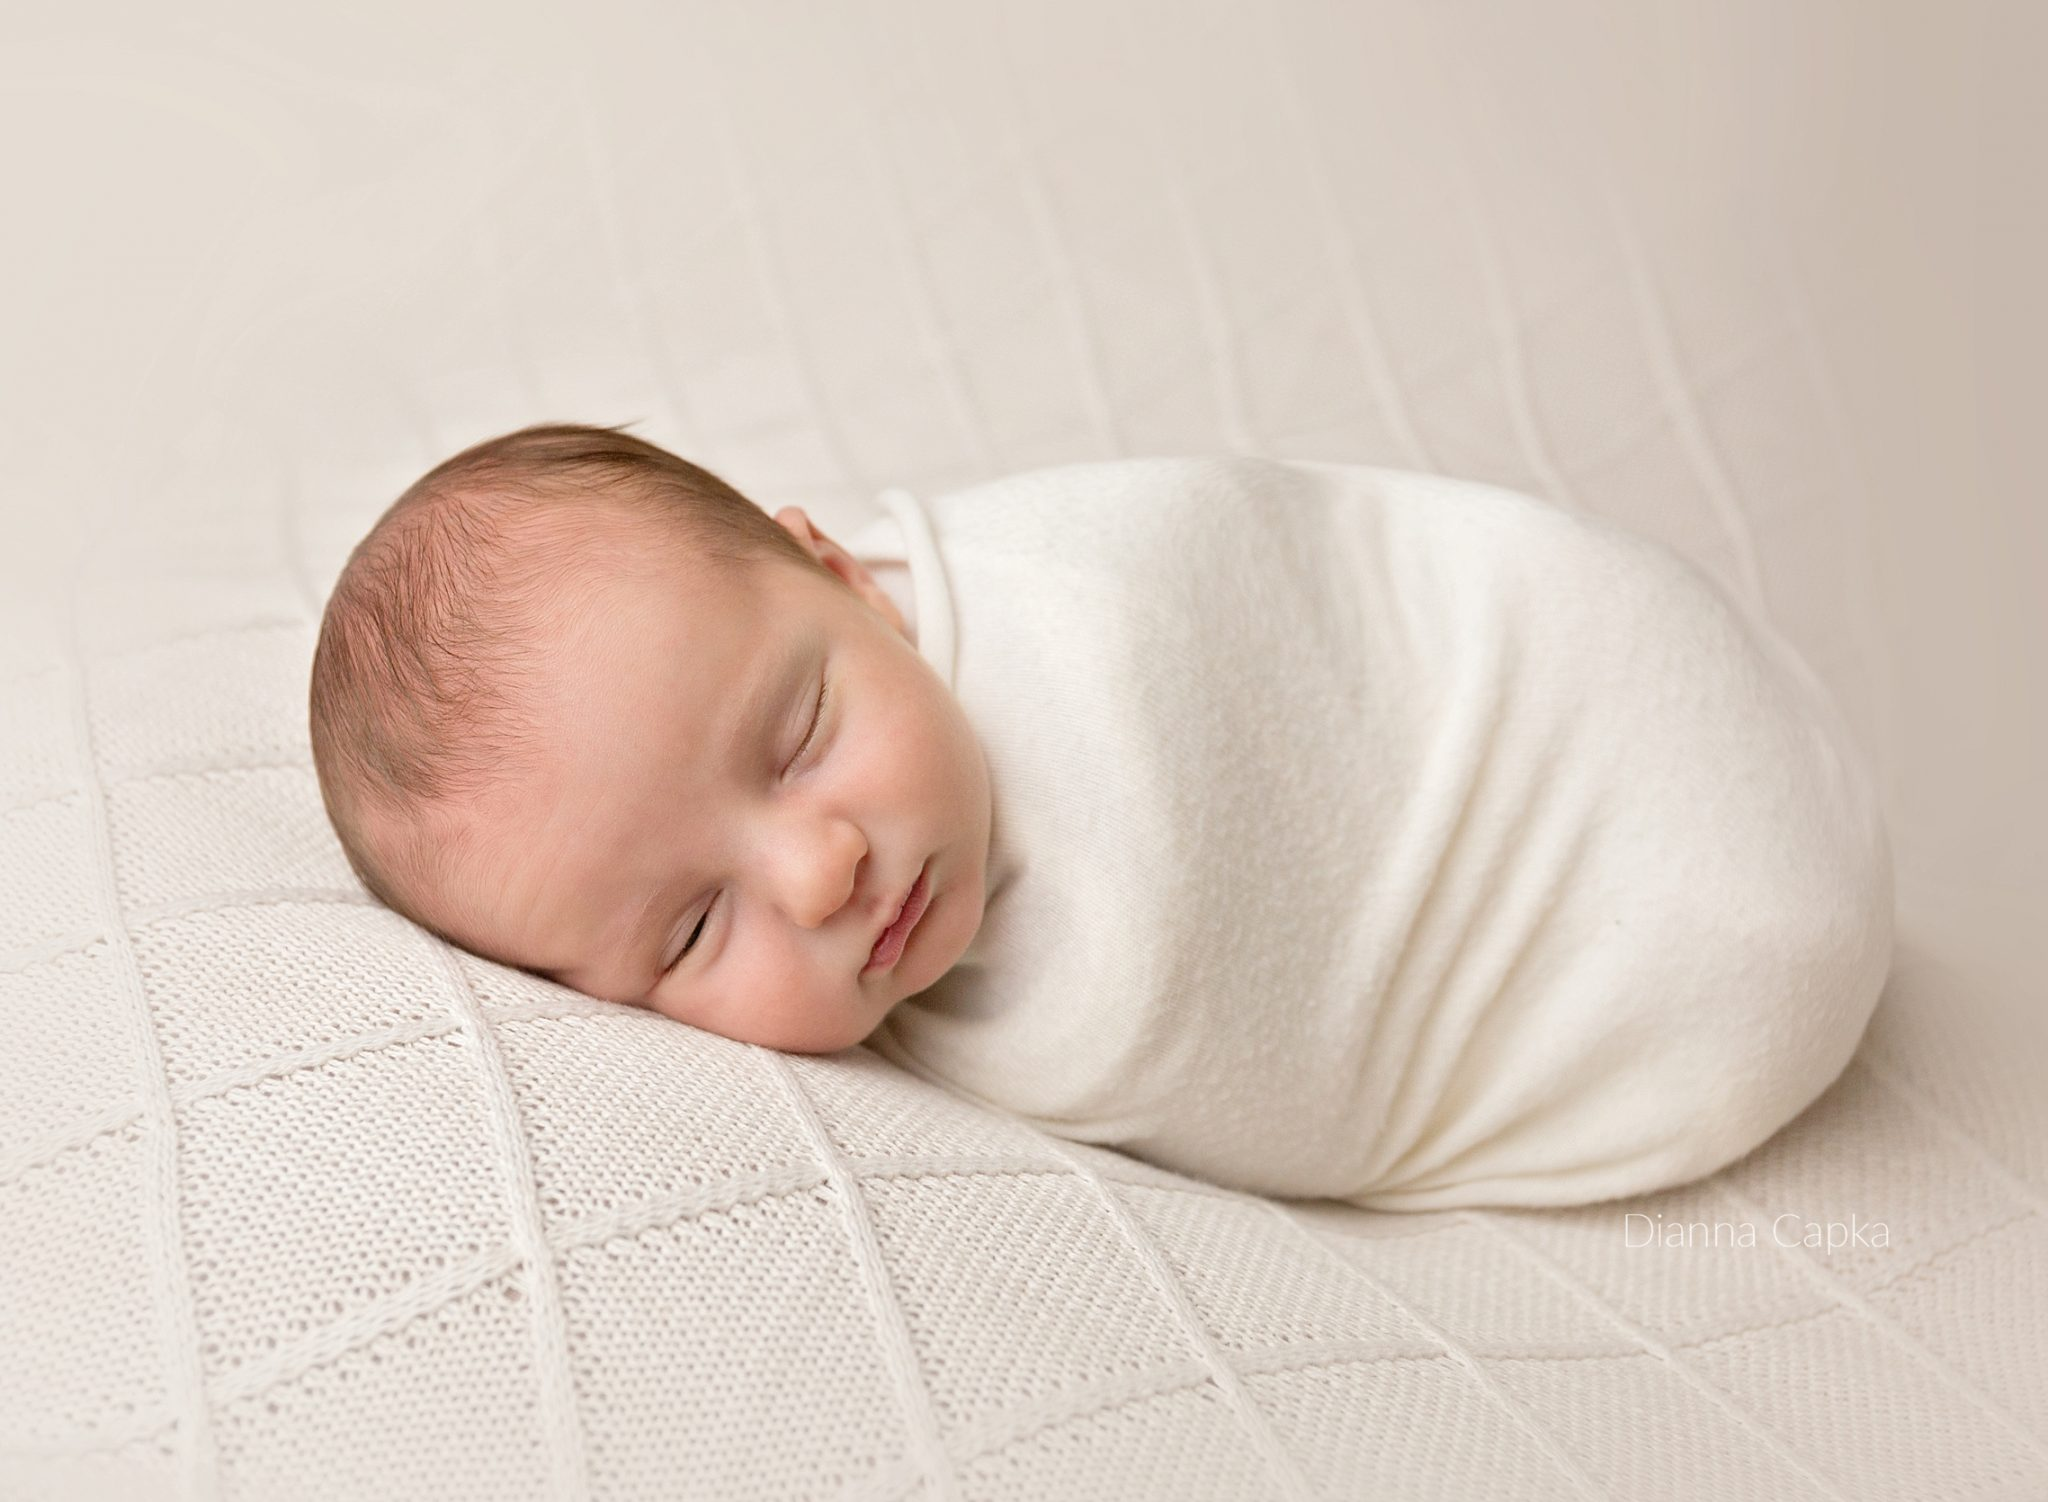 Newborn Boy on Joann fabric backdrop